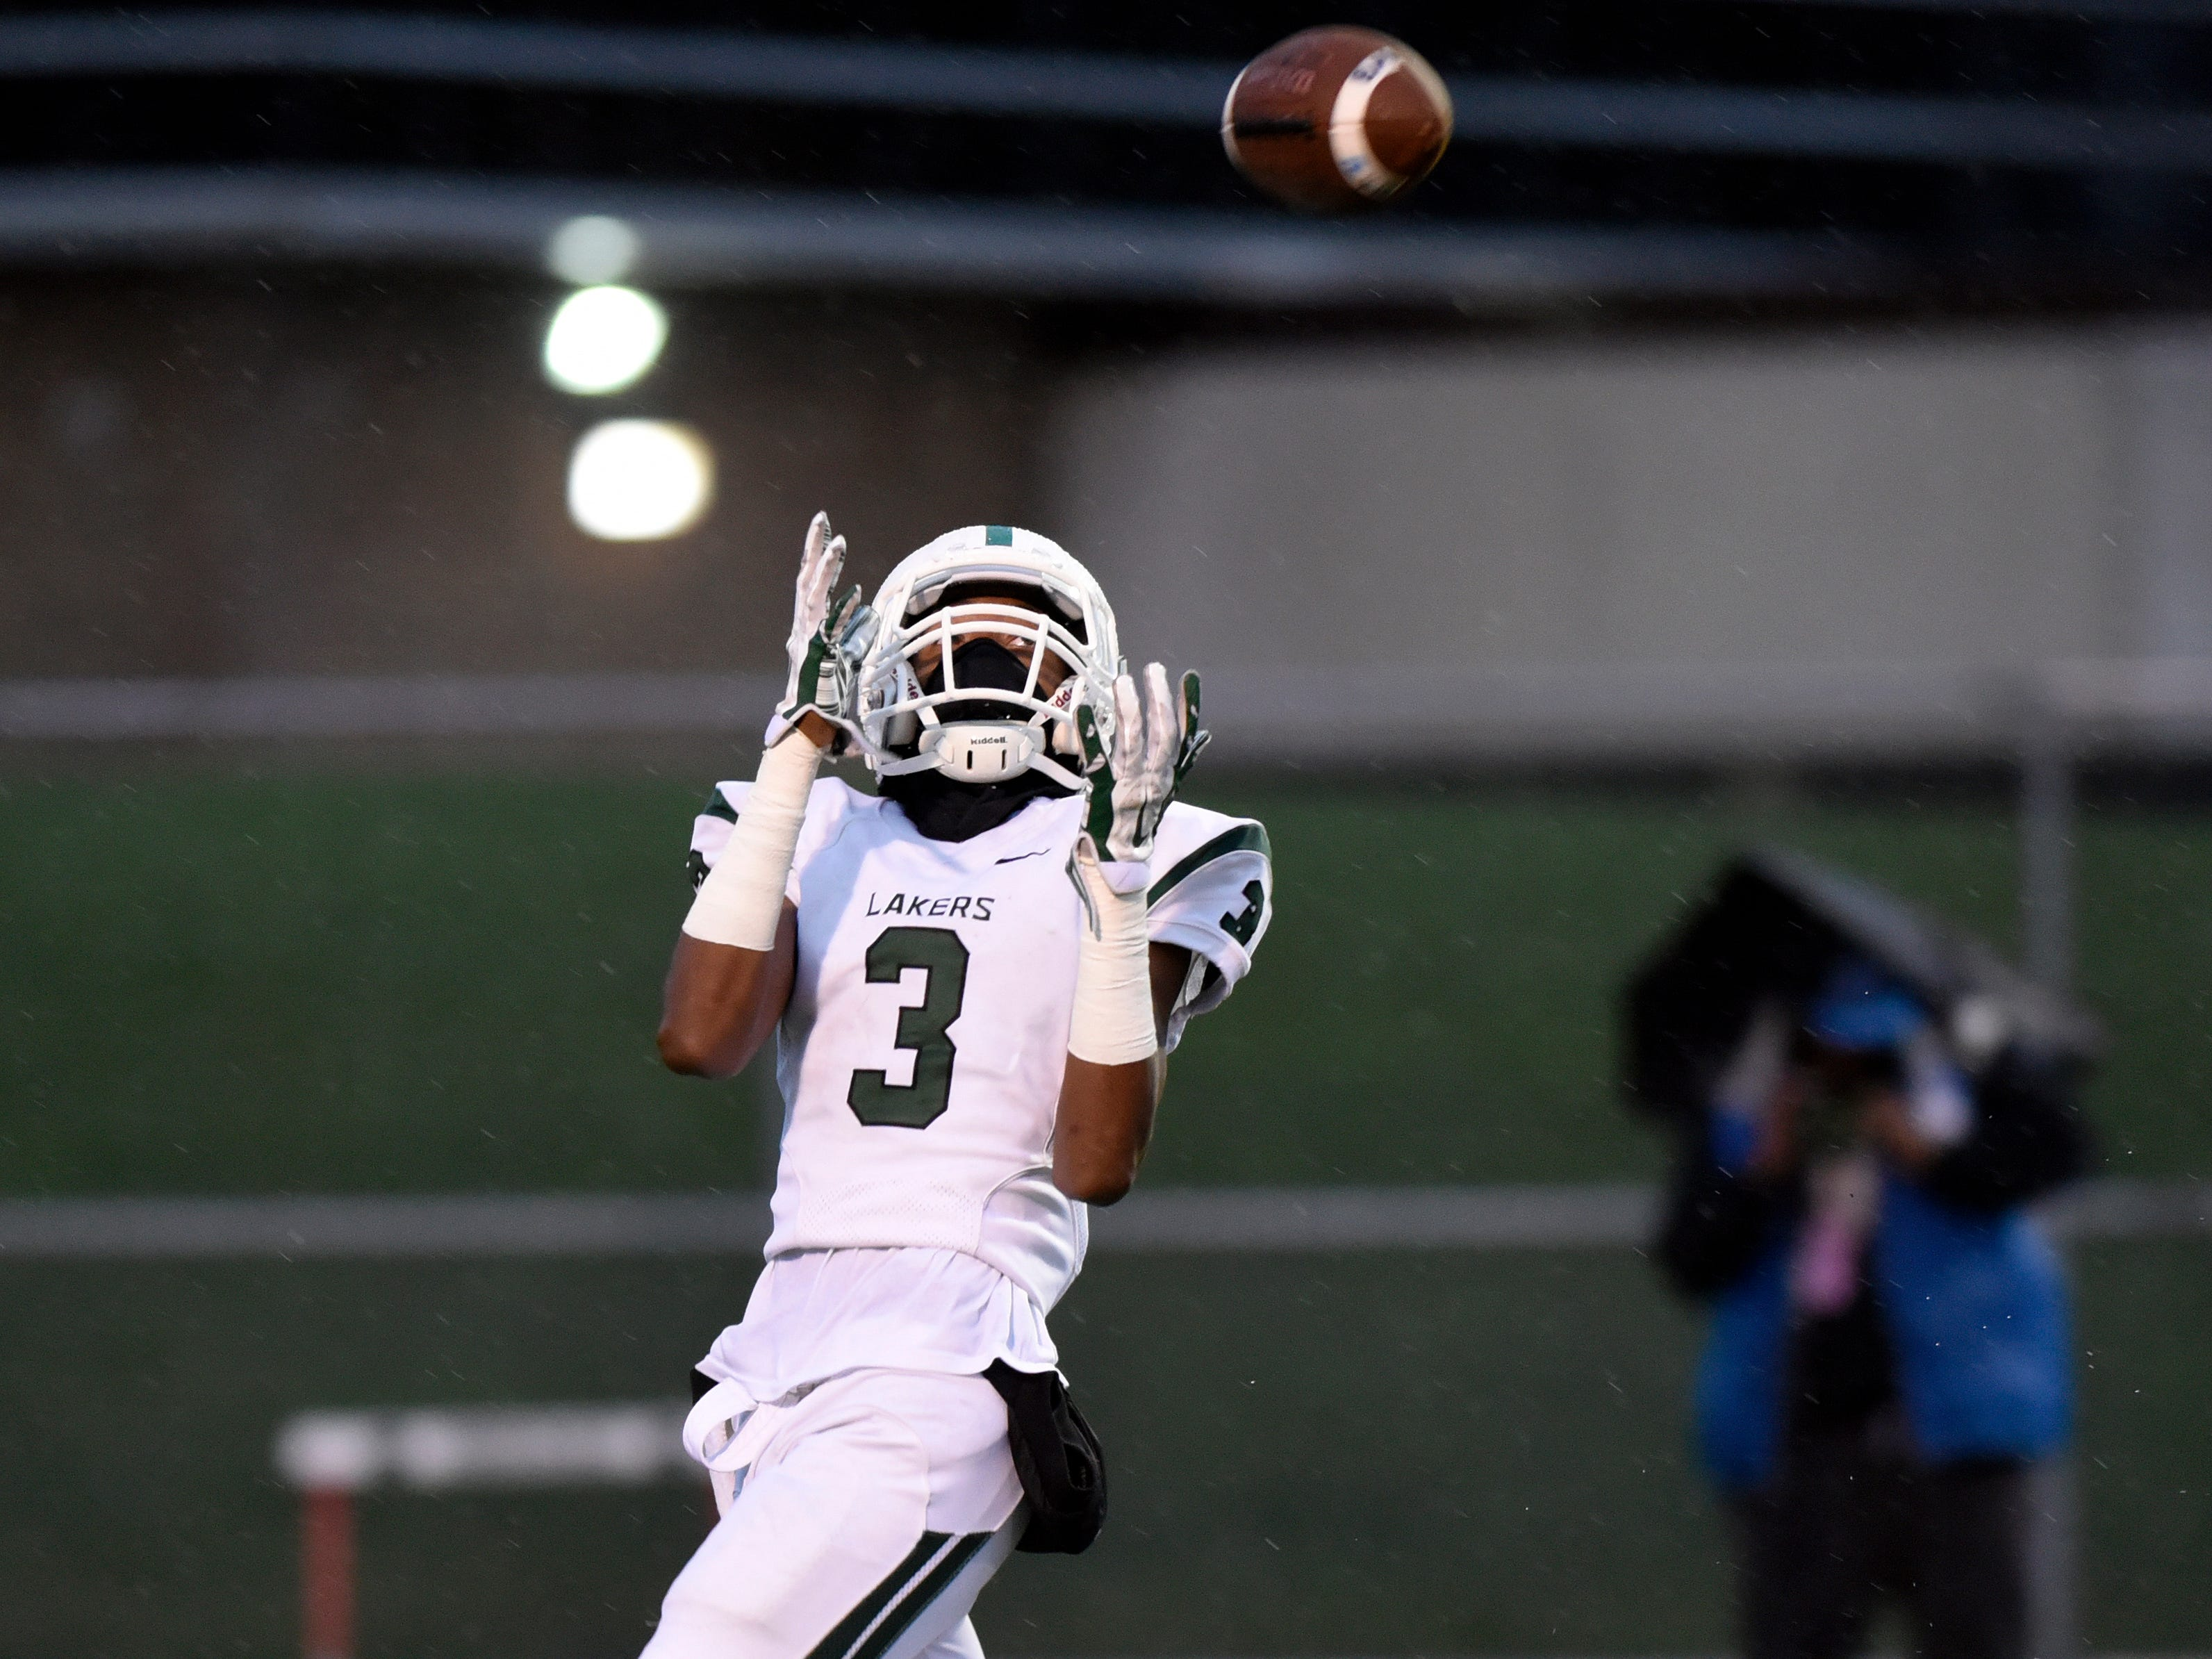 West Bloomfield wide receiver Tyrone Broden (3) hauls in a pass and runs for a touchdown against Oak Park during the first quarter.